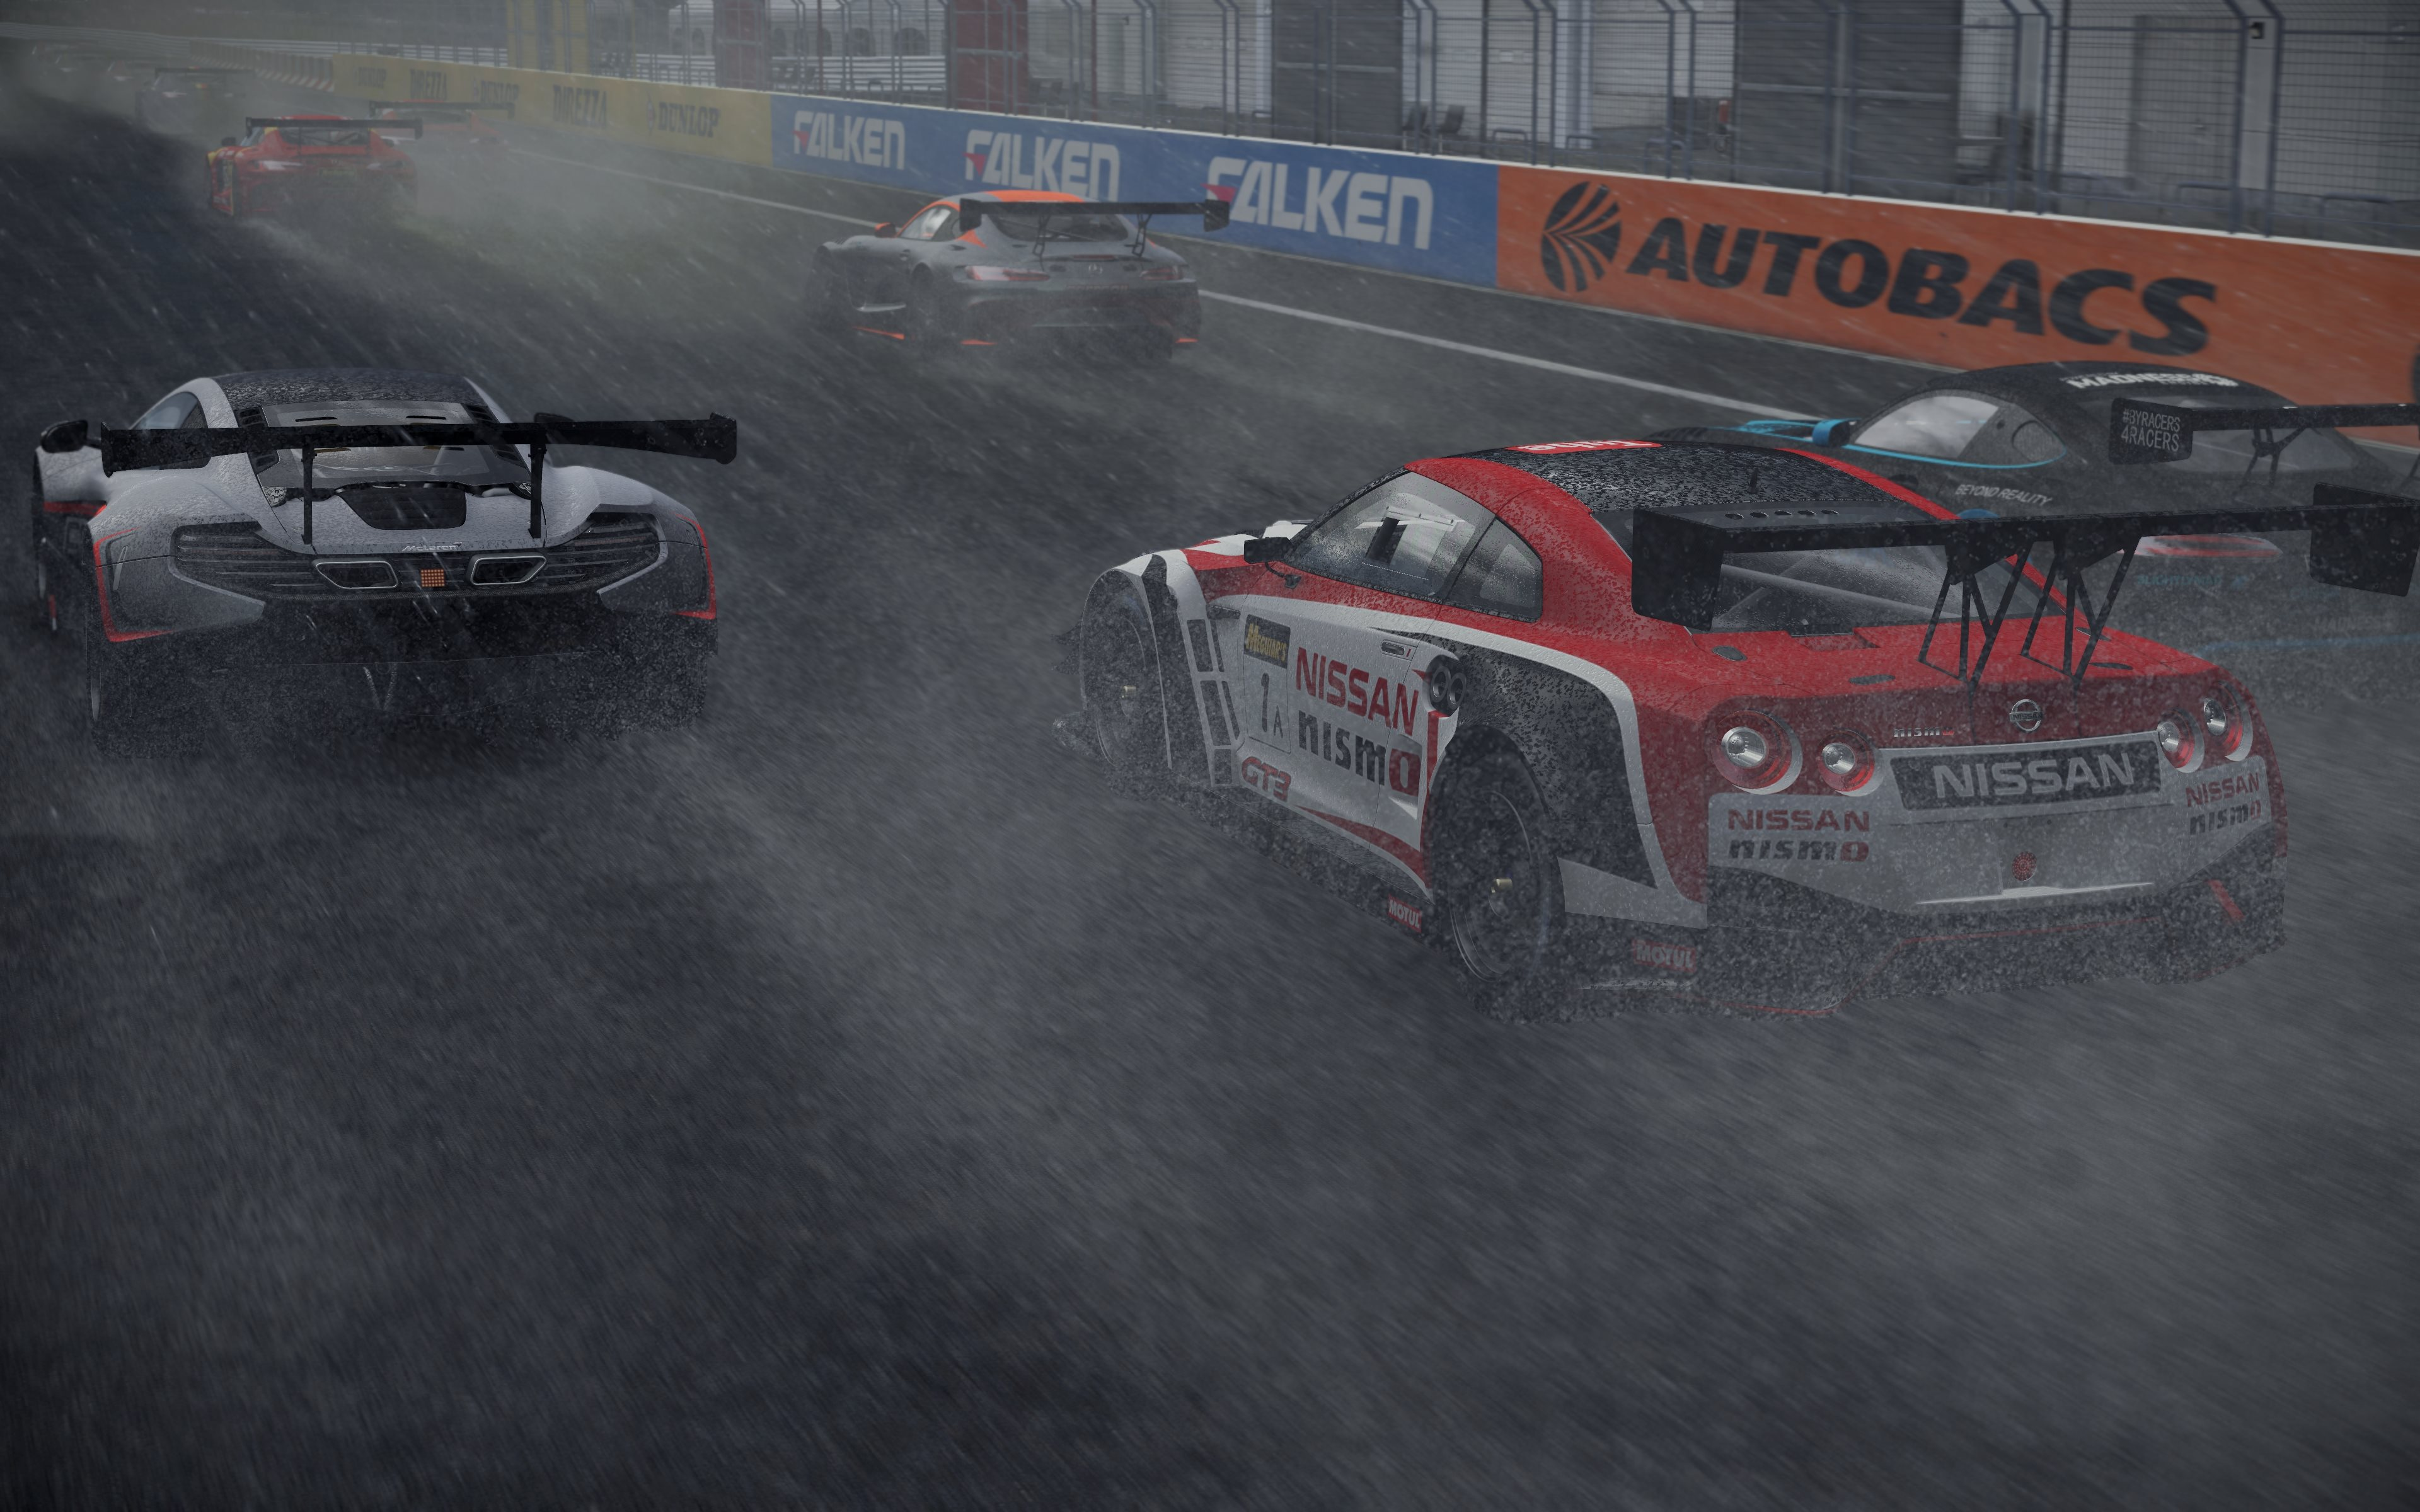 Forza 7 Car List >> Project Cars 2 180-strong car list includes Open Wheel, GT, LMP, WRX, and a few road cars - VG247